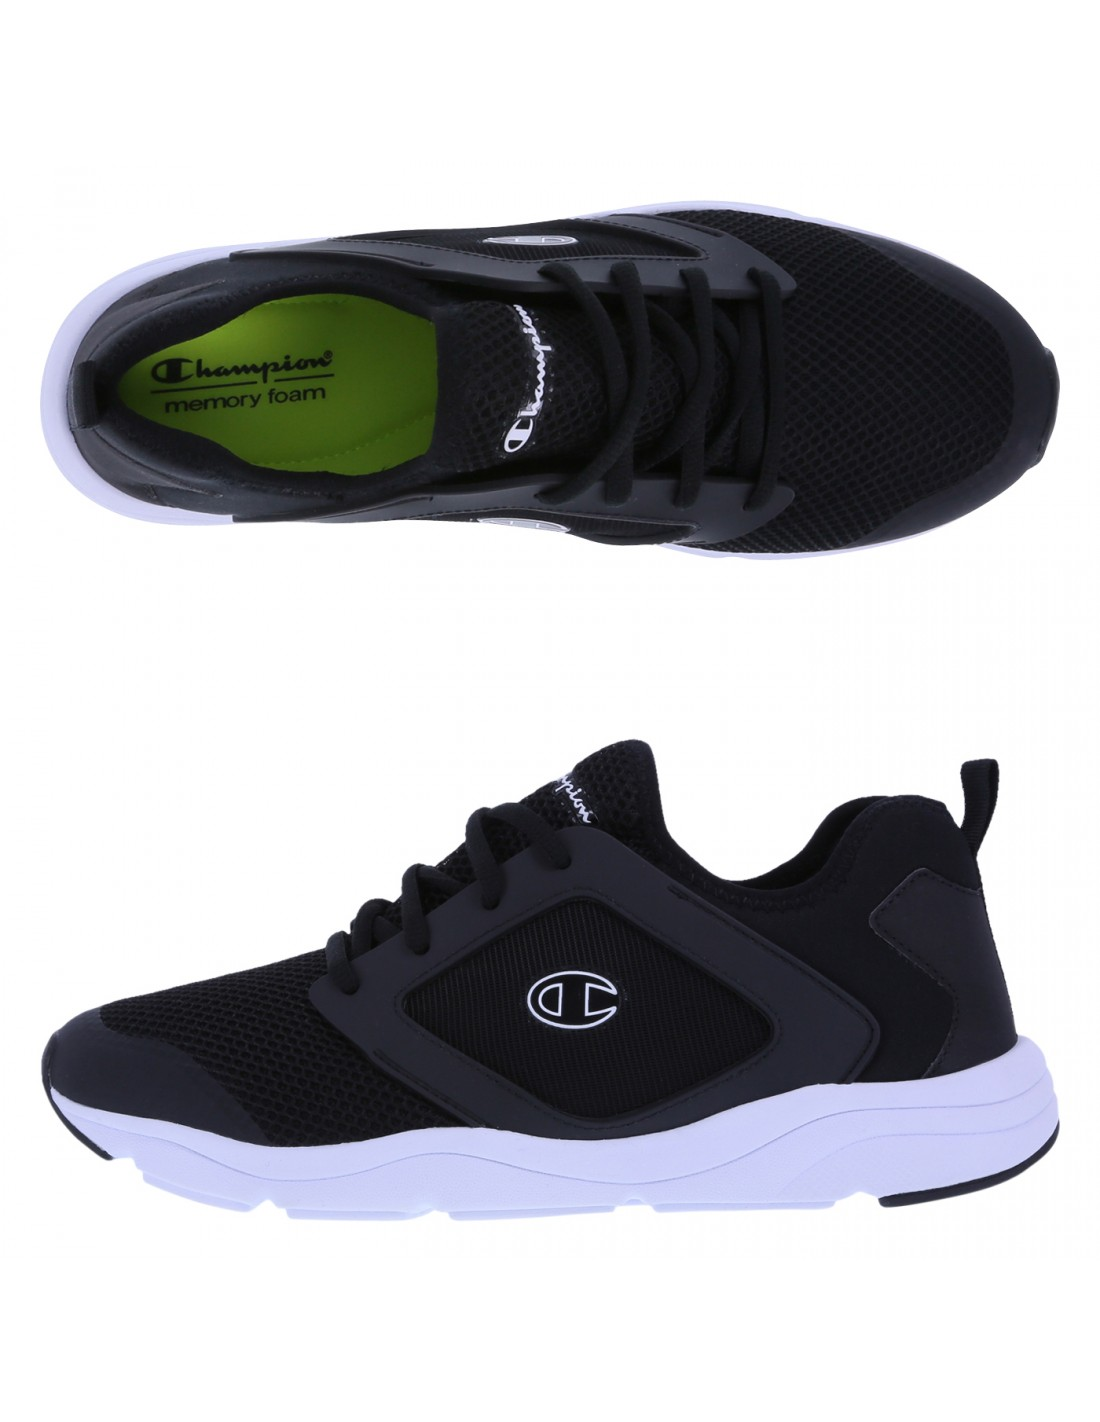 28e4d8ce248 Men s Frenzy Runner shoes